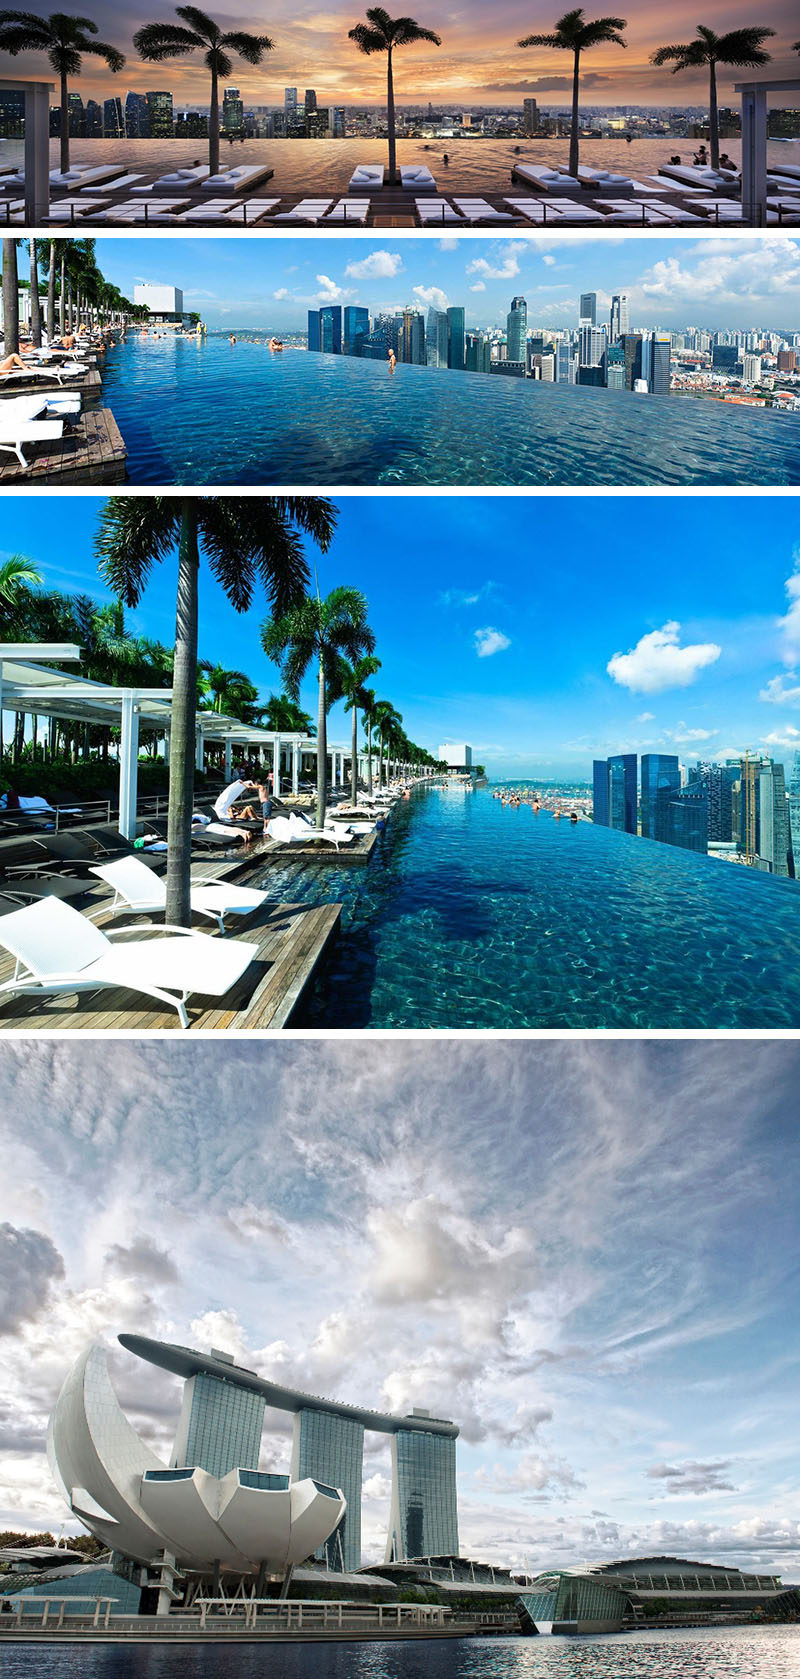 10 Incredible Hotel Rooftops From Around The World // 2. The infinity pool on top of the Marina Bay Sands hotel in Singapore is as long as three Olympic size swimming pools and is 57 levels up.